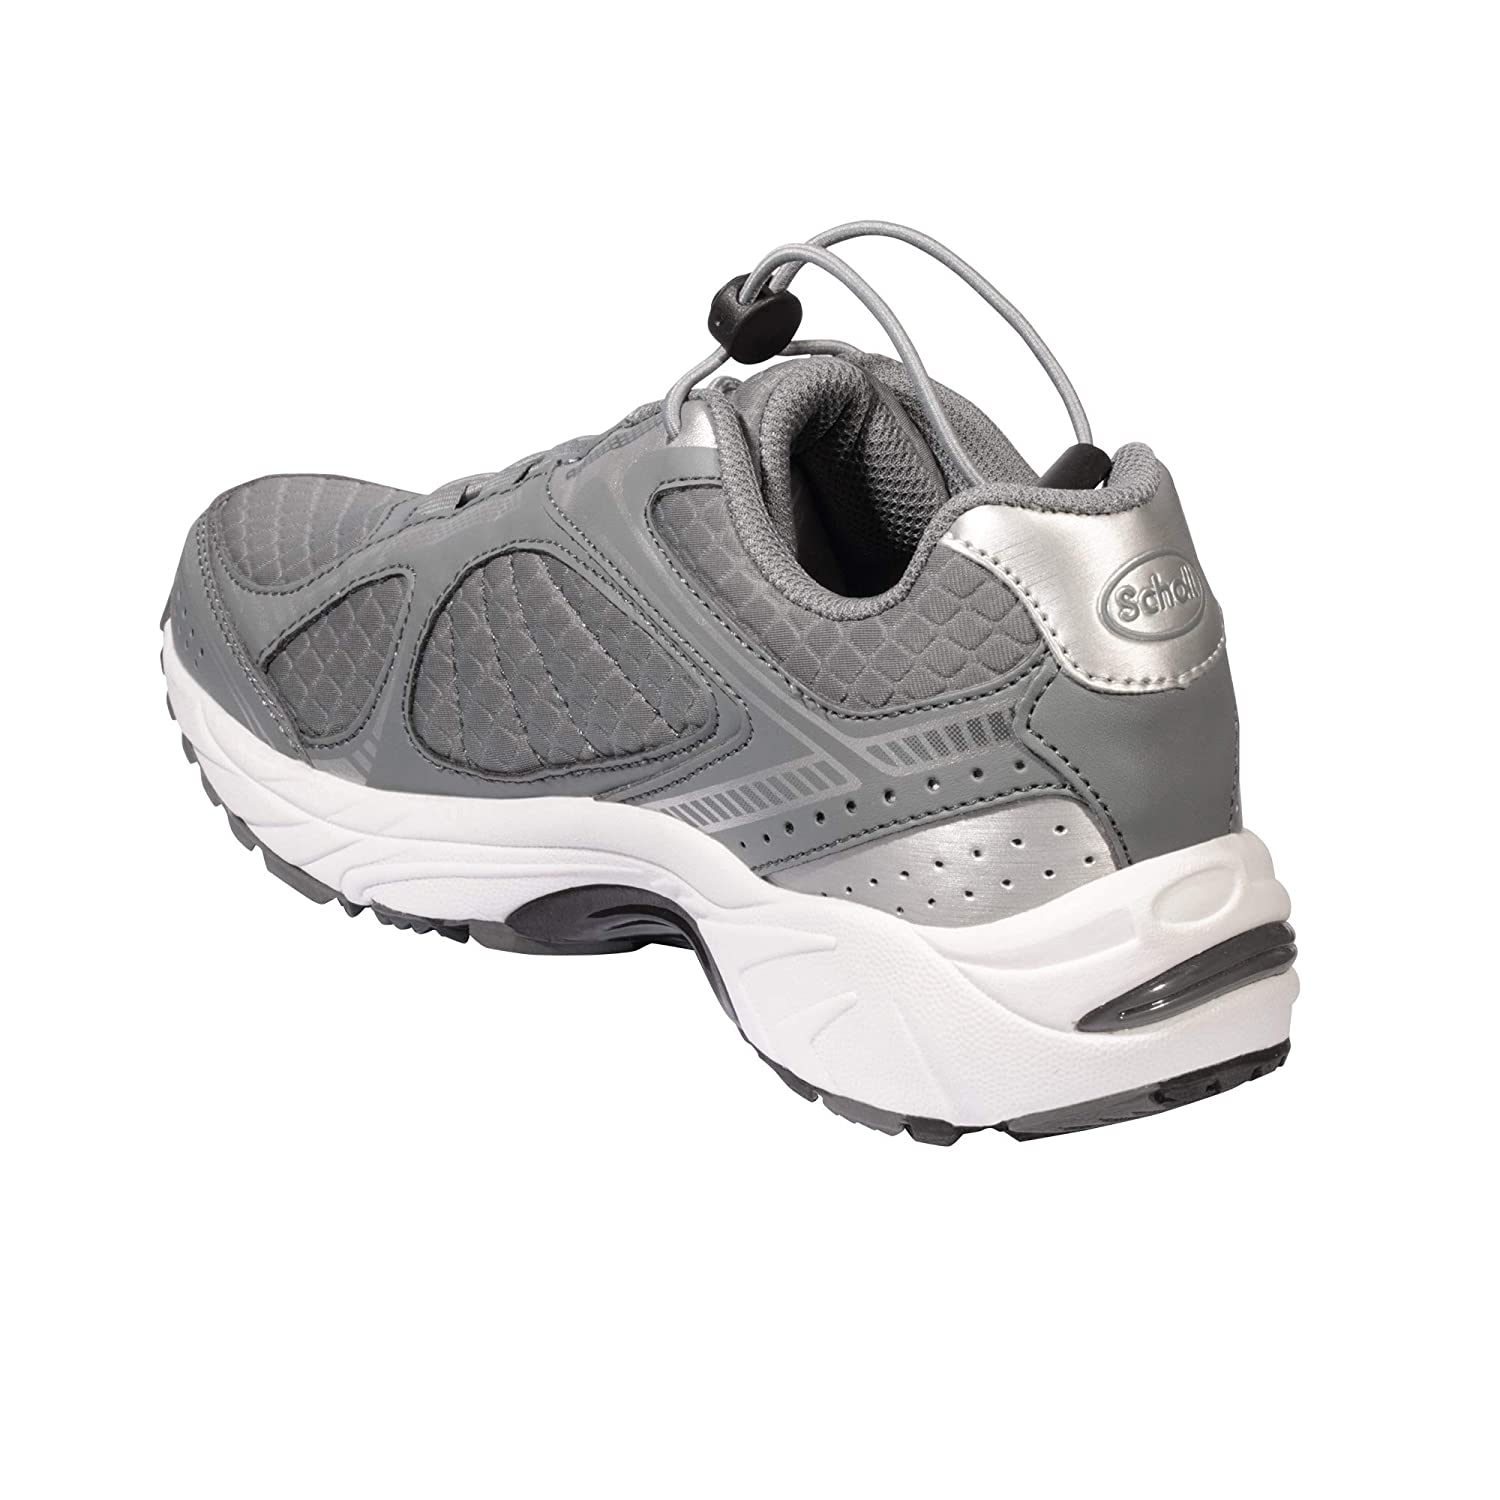 Scholl Deportivas Sprinter Easy Grigio 36: Amazon.es: Zapatos y ...